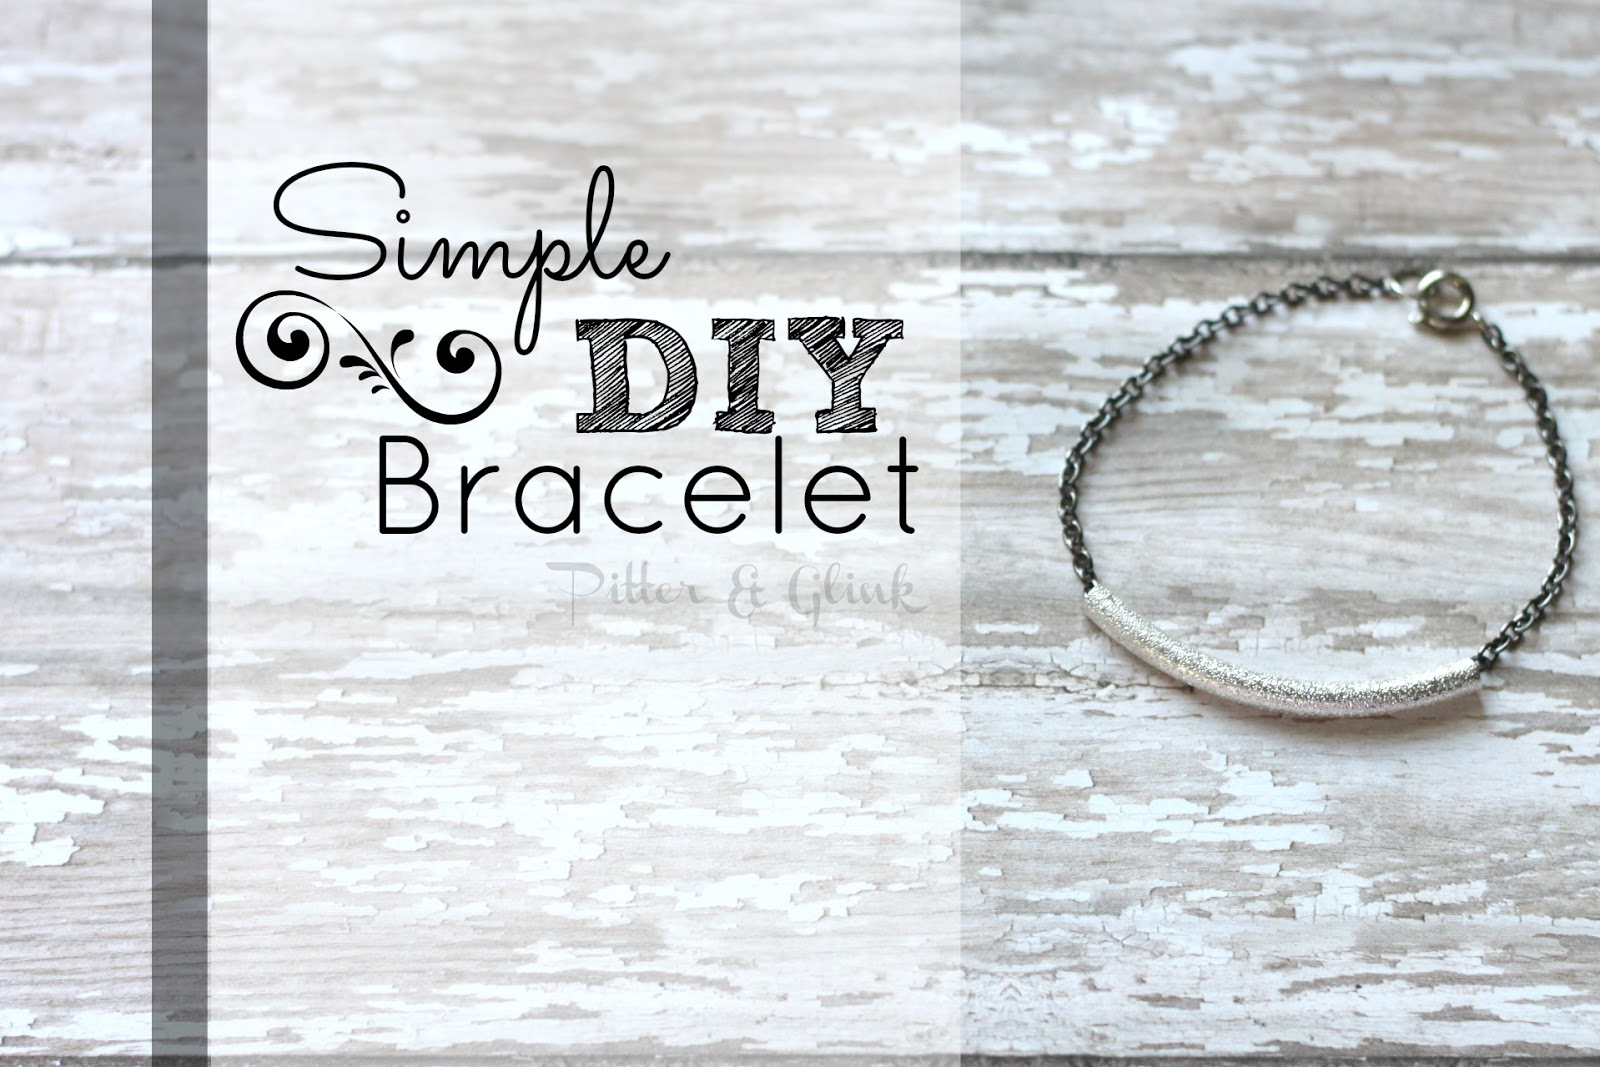 Simple DIY Bracelet pitterandglink.com